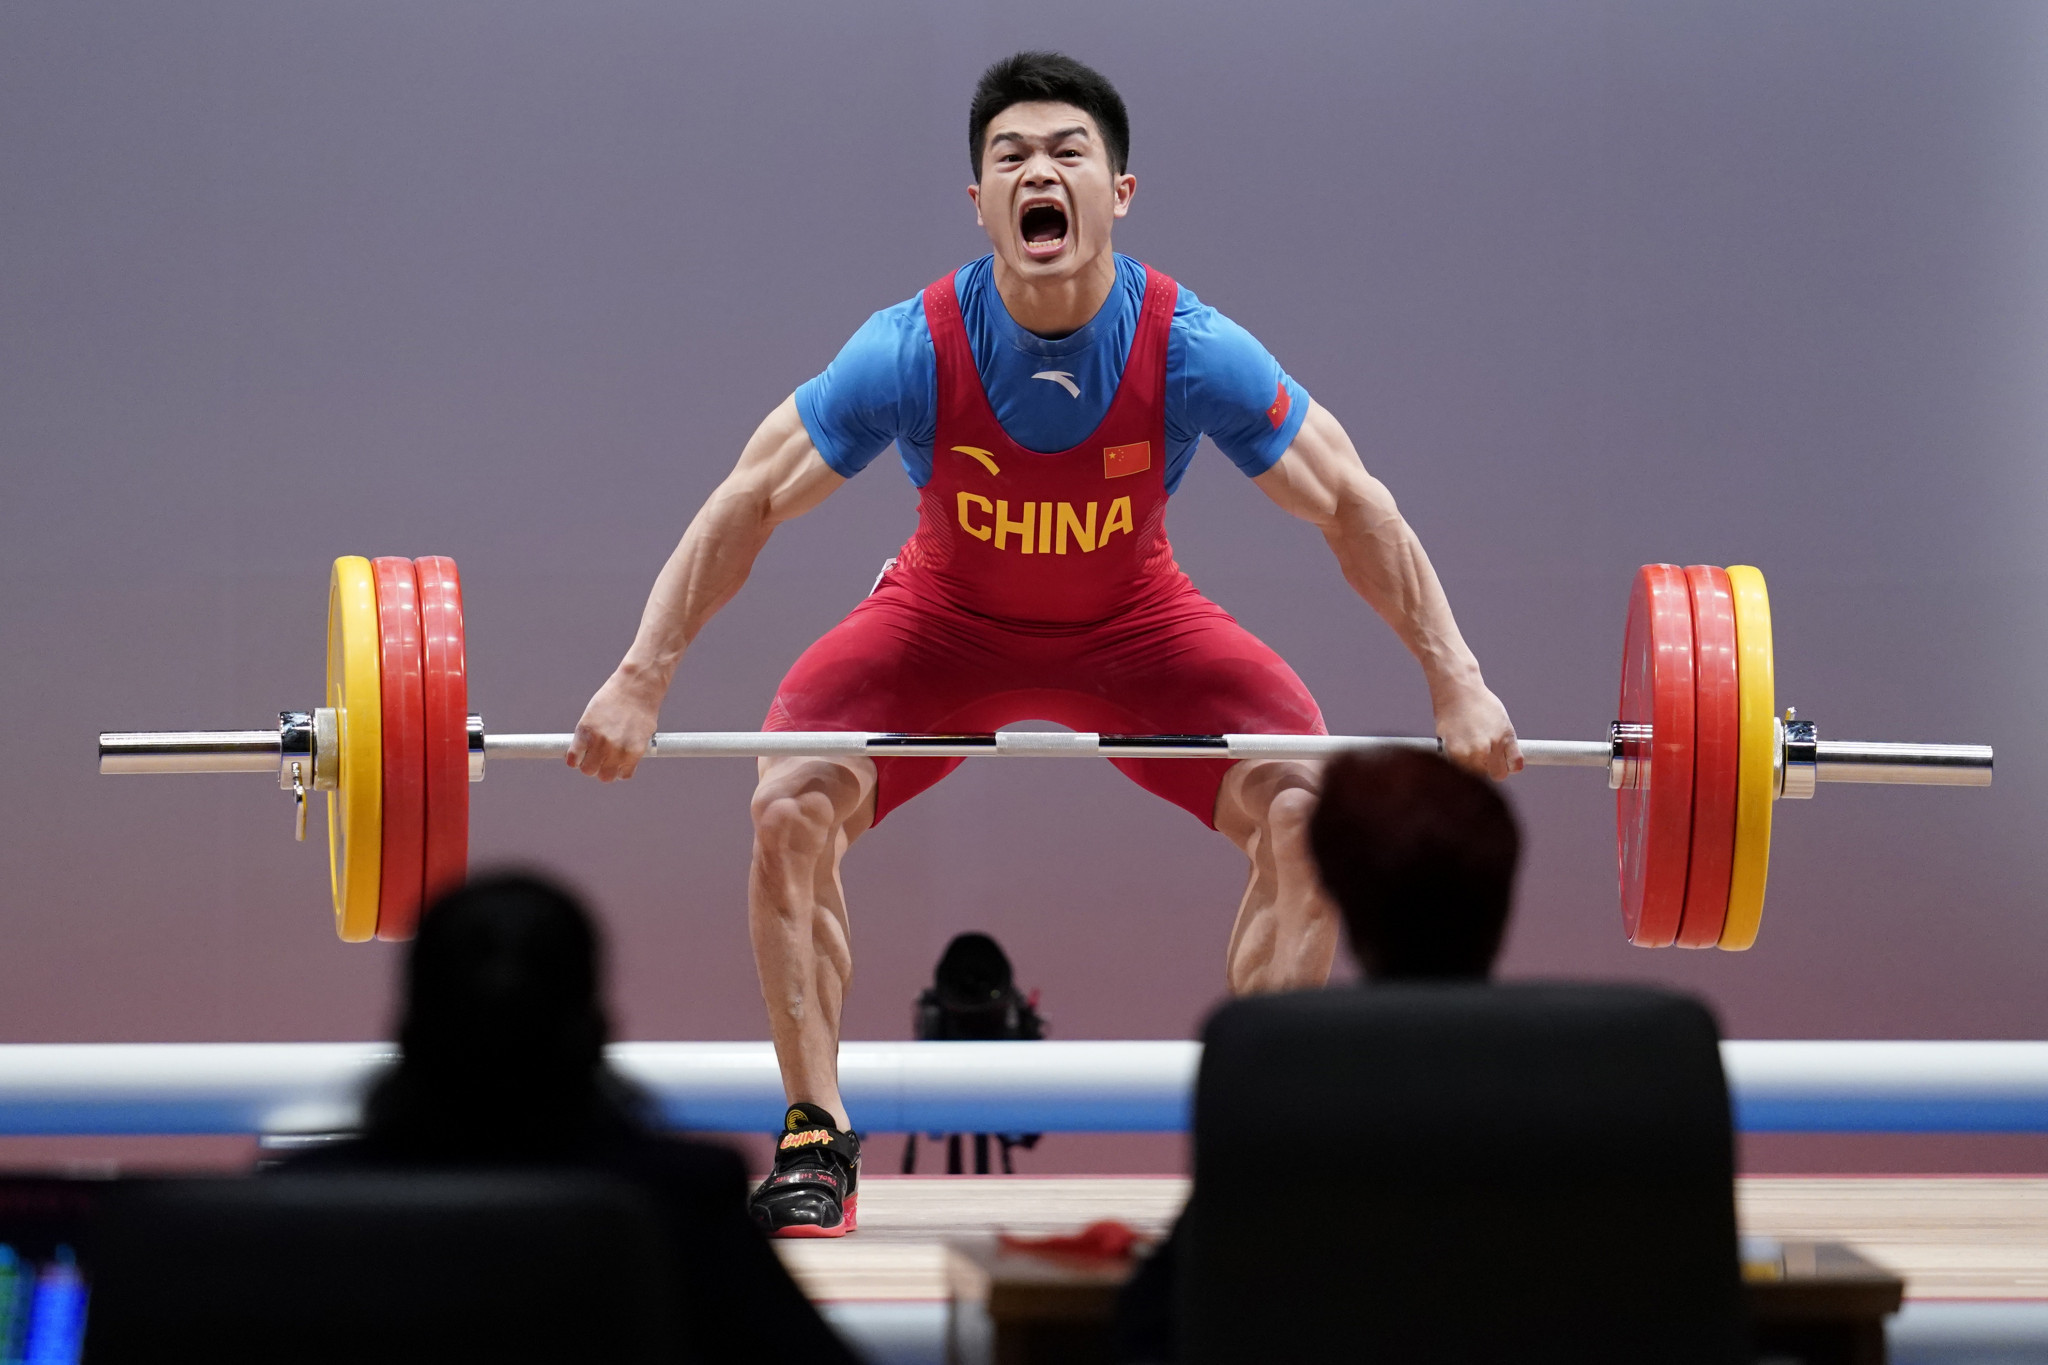 Shi Zhiyong equalled a world record lift at the Men's National Championships, but as it is not an international competition it is not classed as an official world record ©Getty Images